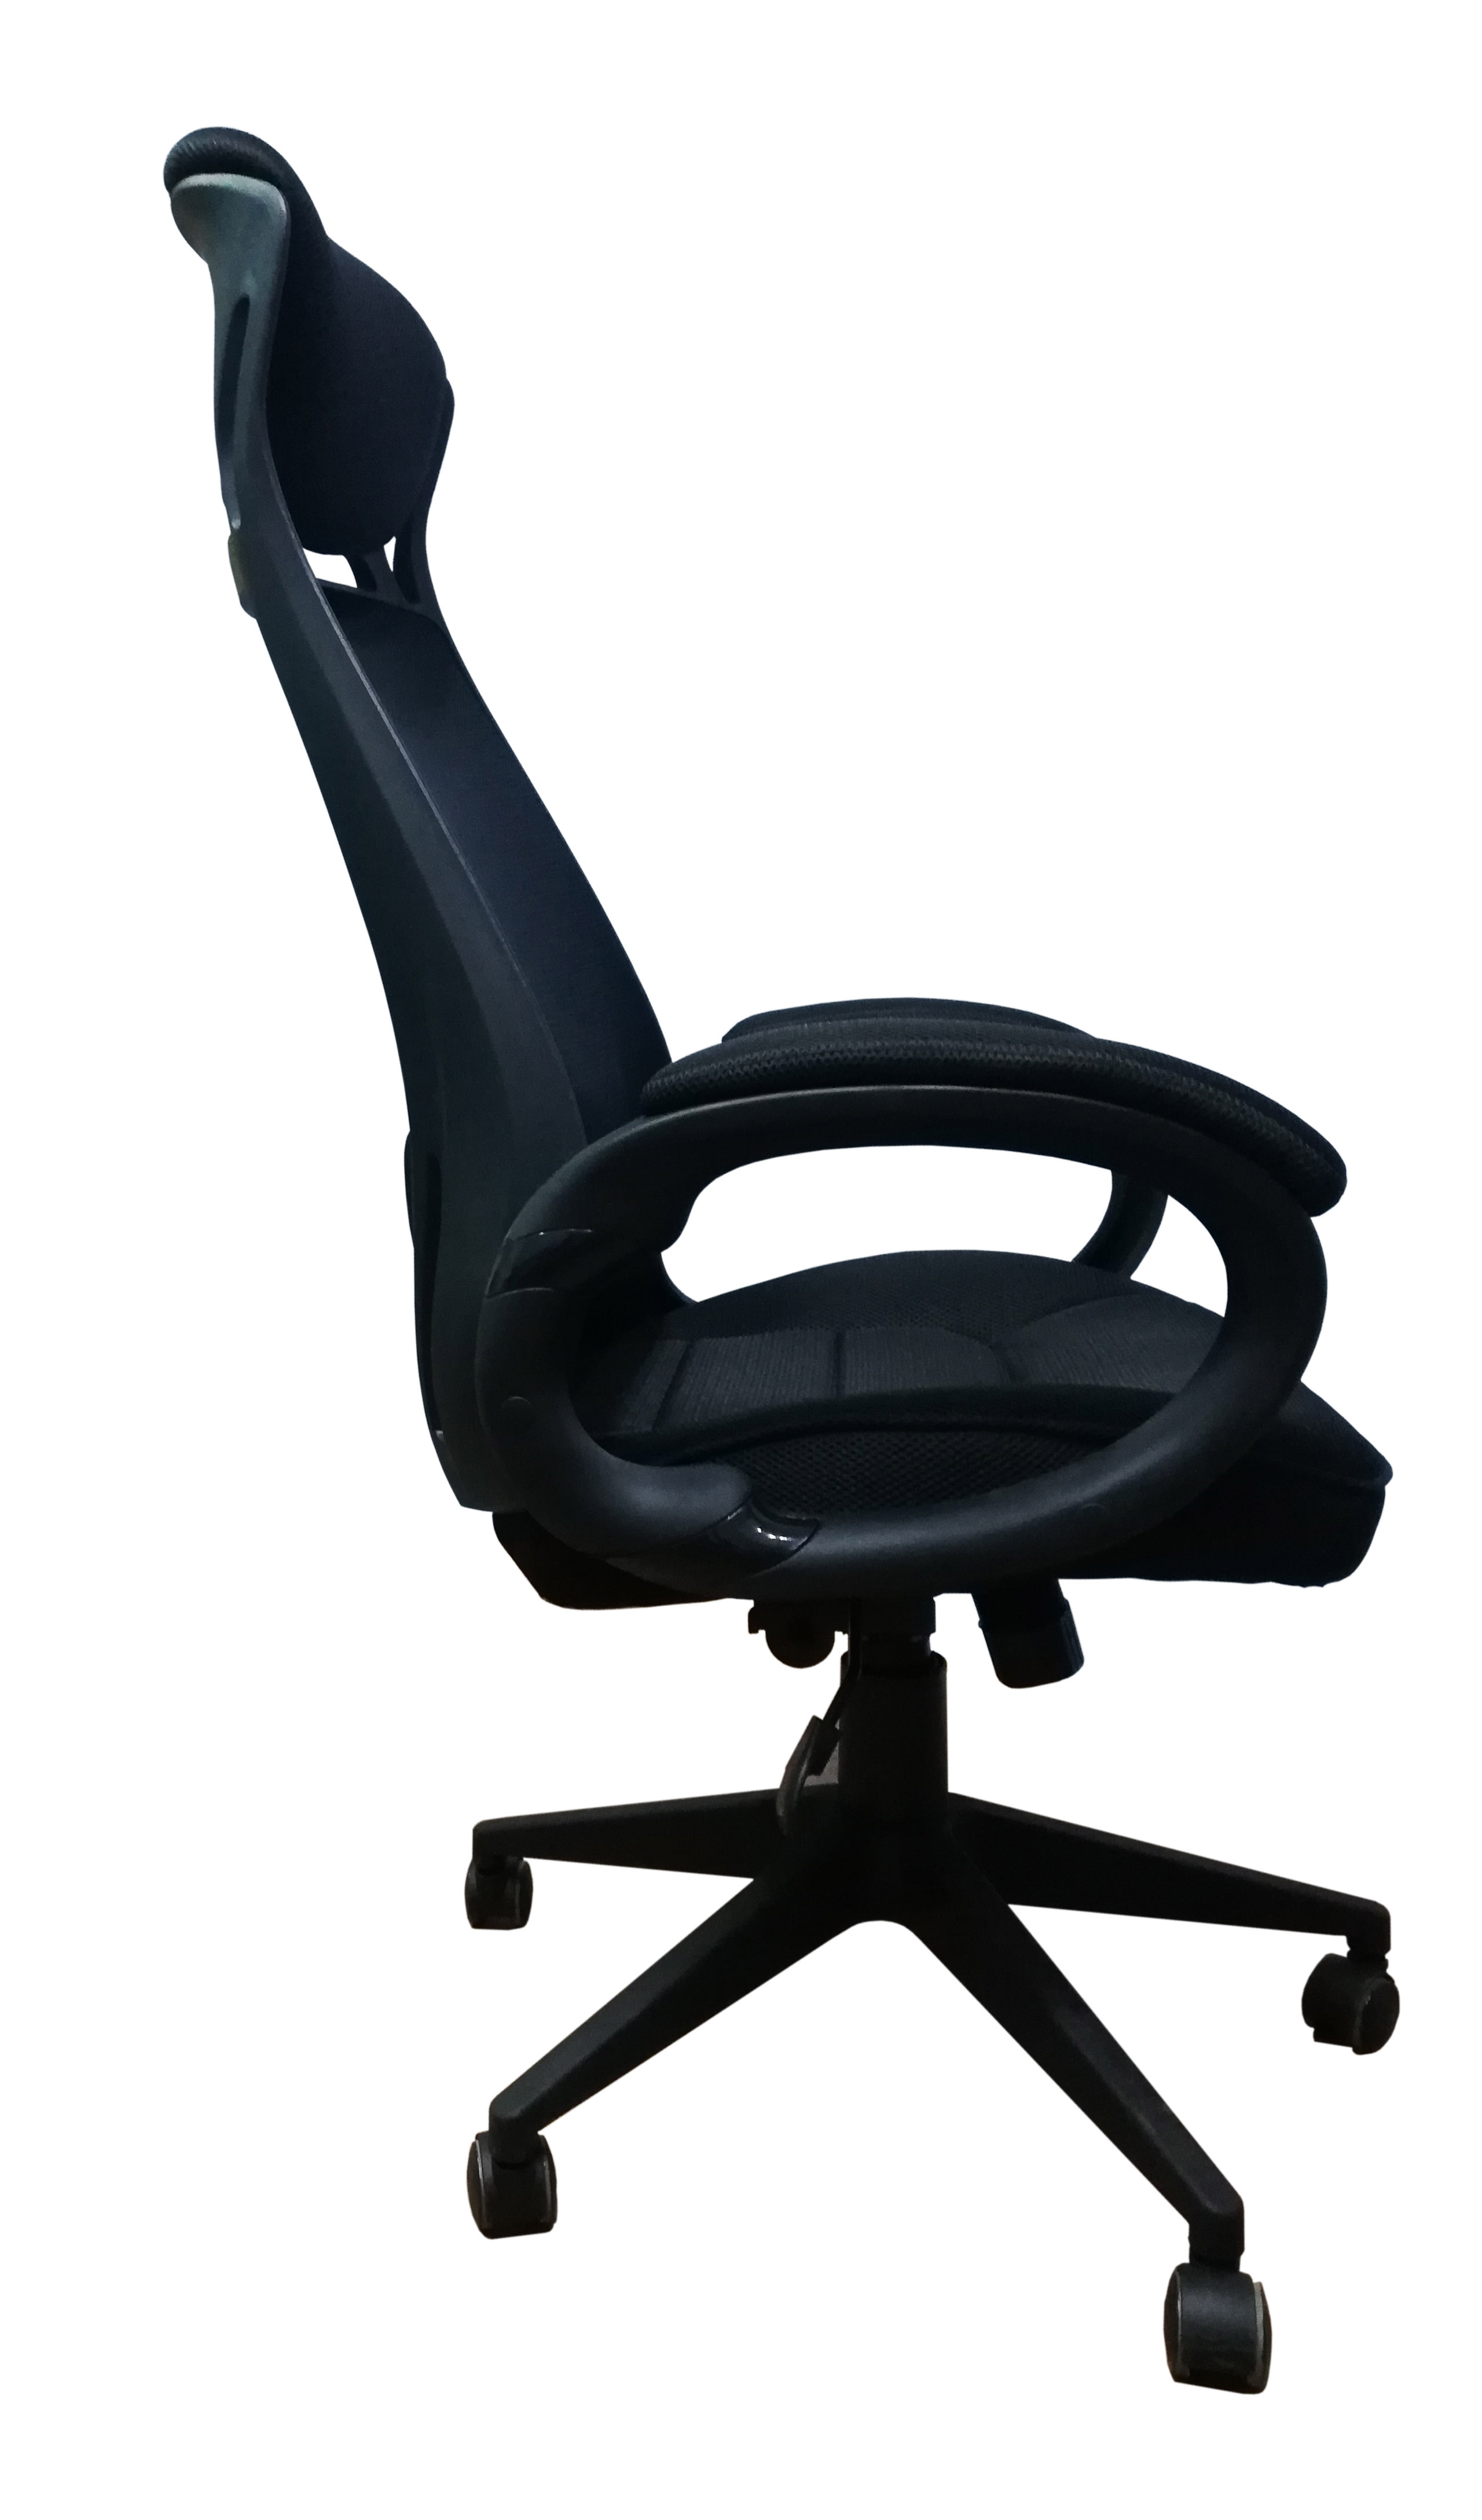 Imported Gaming Chairs Best Price In Pakistan Daraz Pk